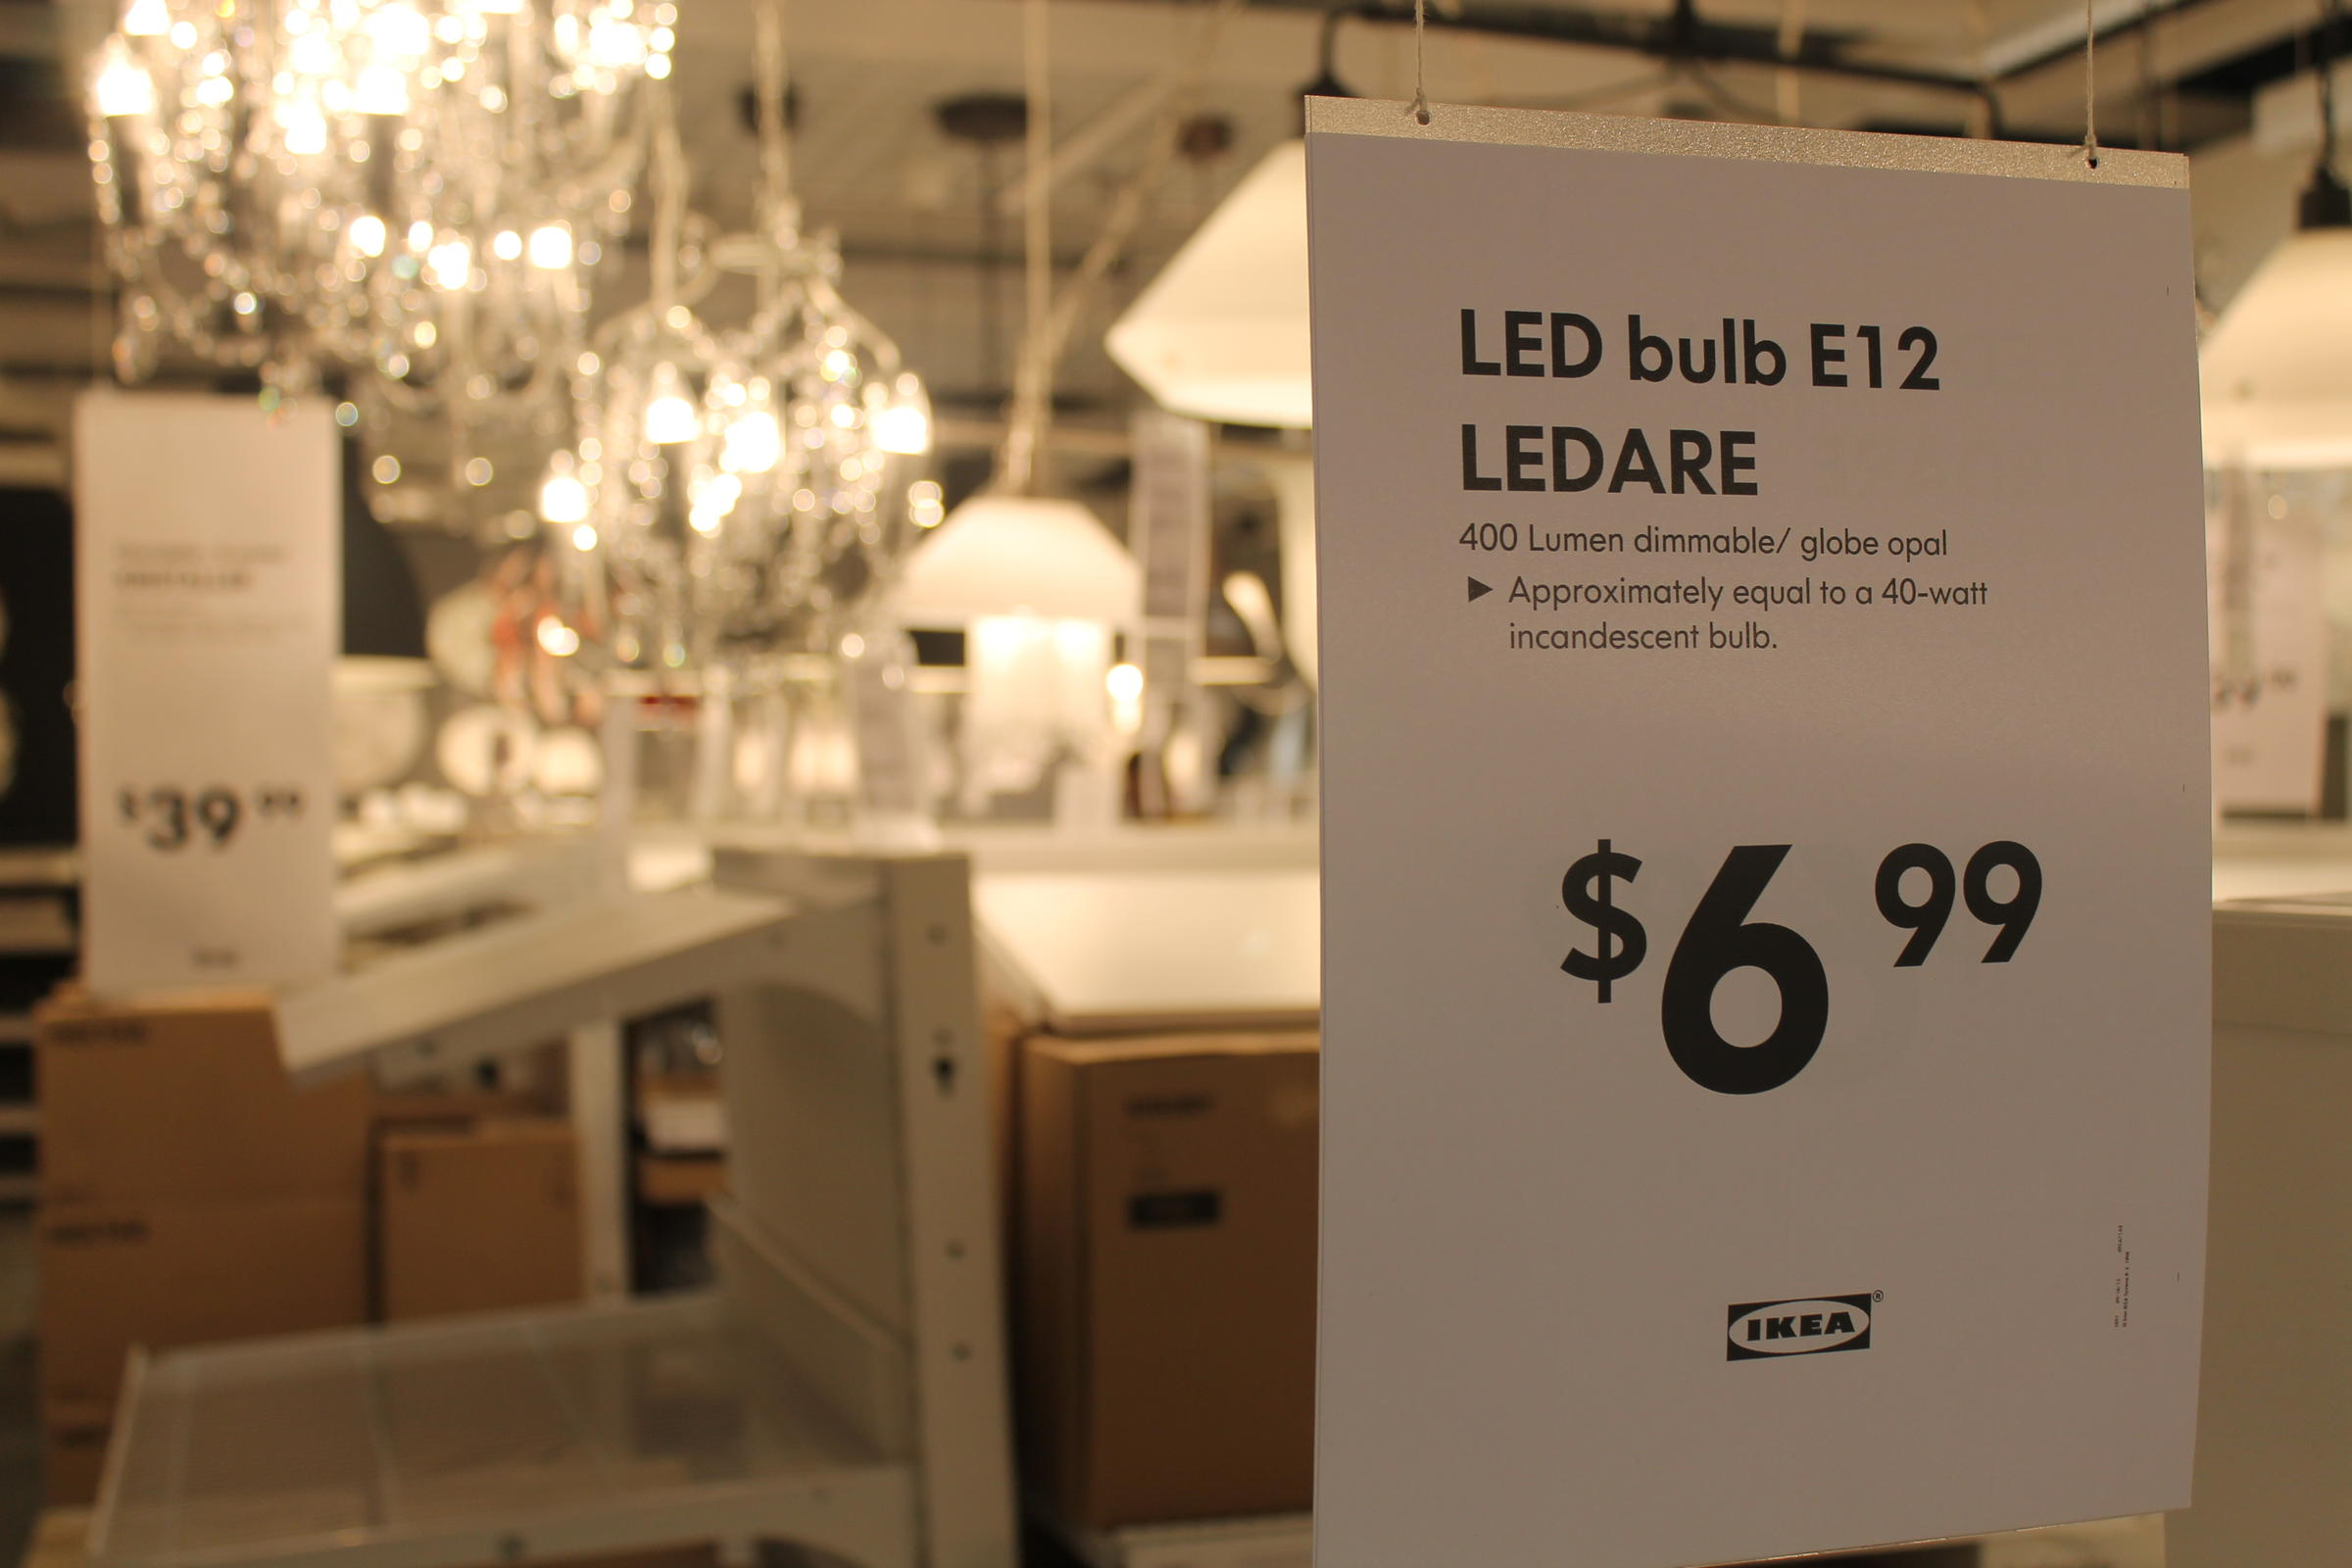 A Label For Led Light Bulbs With Light Displays In The Background The St Louis Store Is Ikea S First Of Its Size To Operate On And Sell Only Led Lights